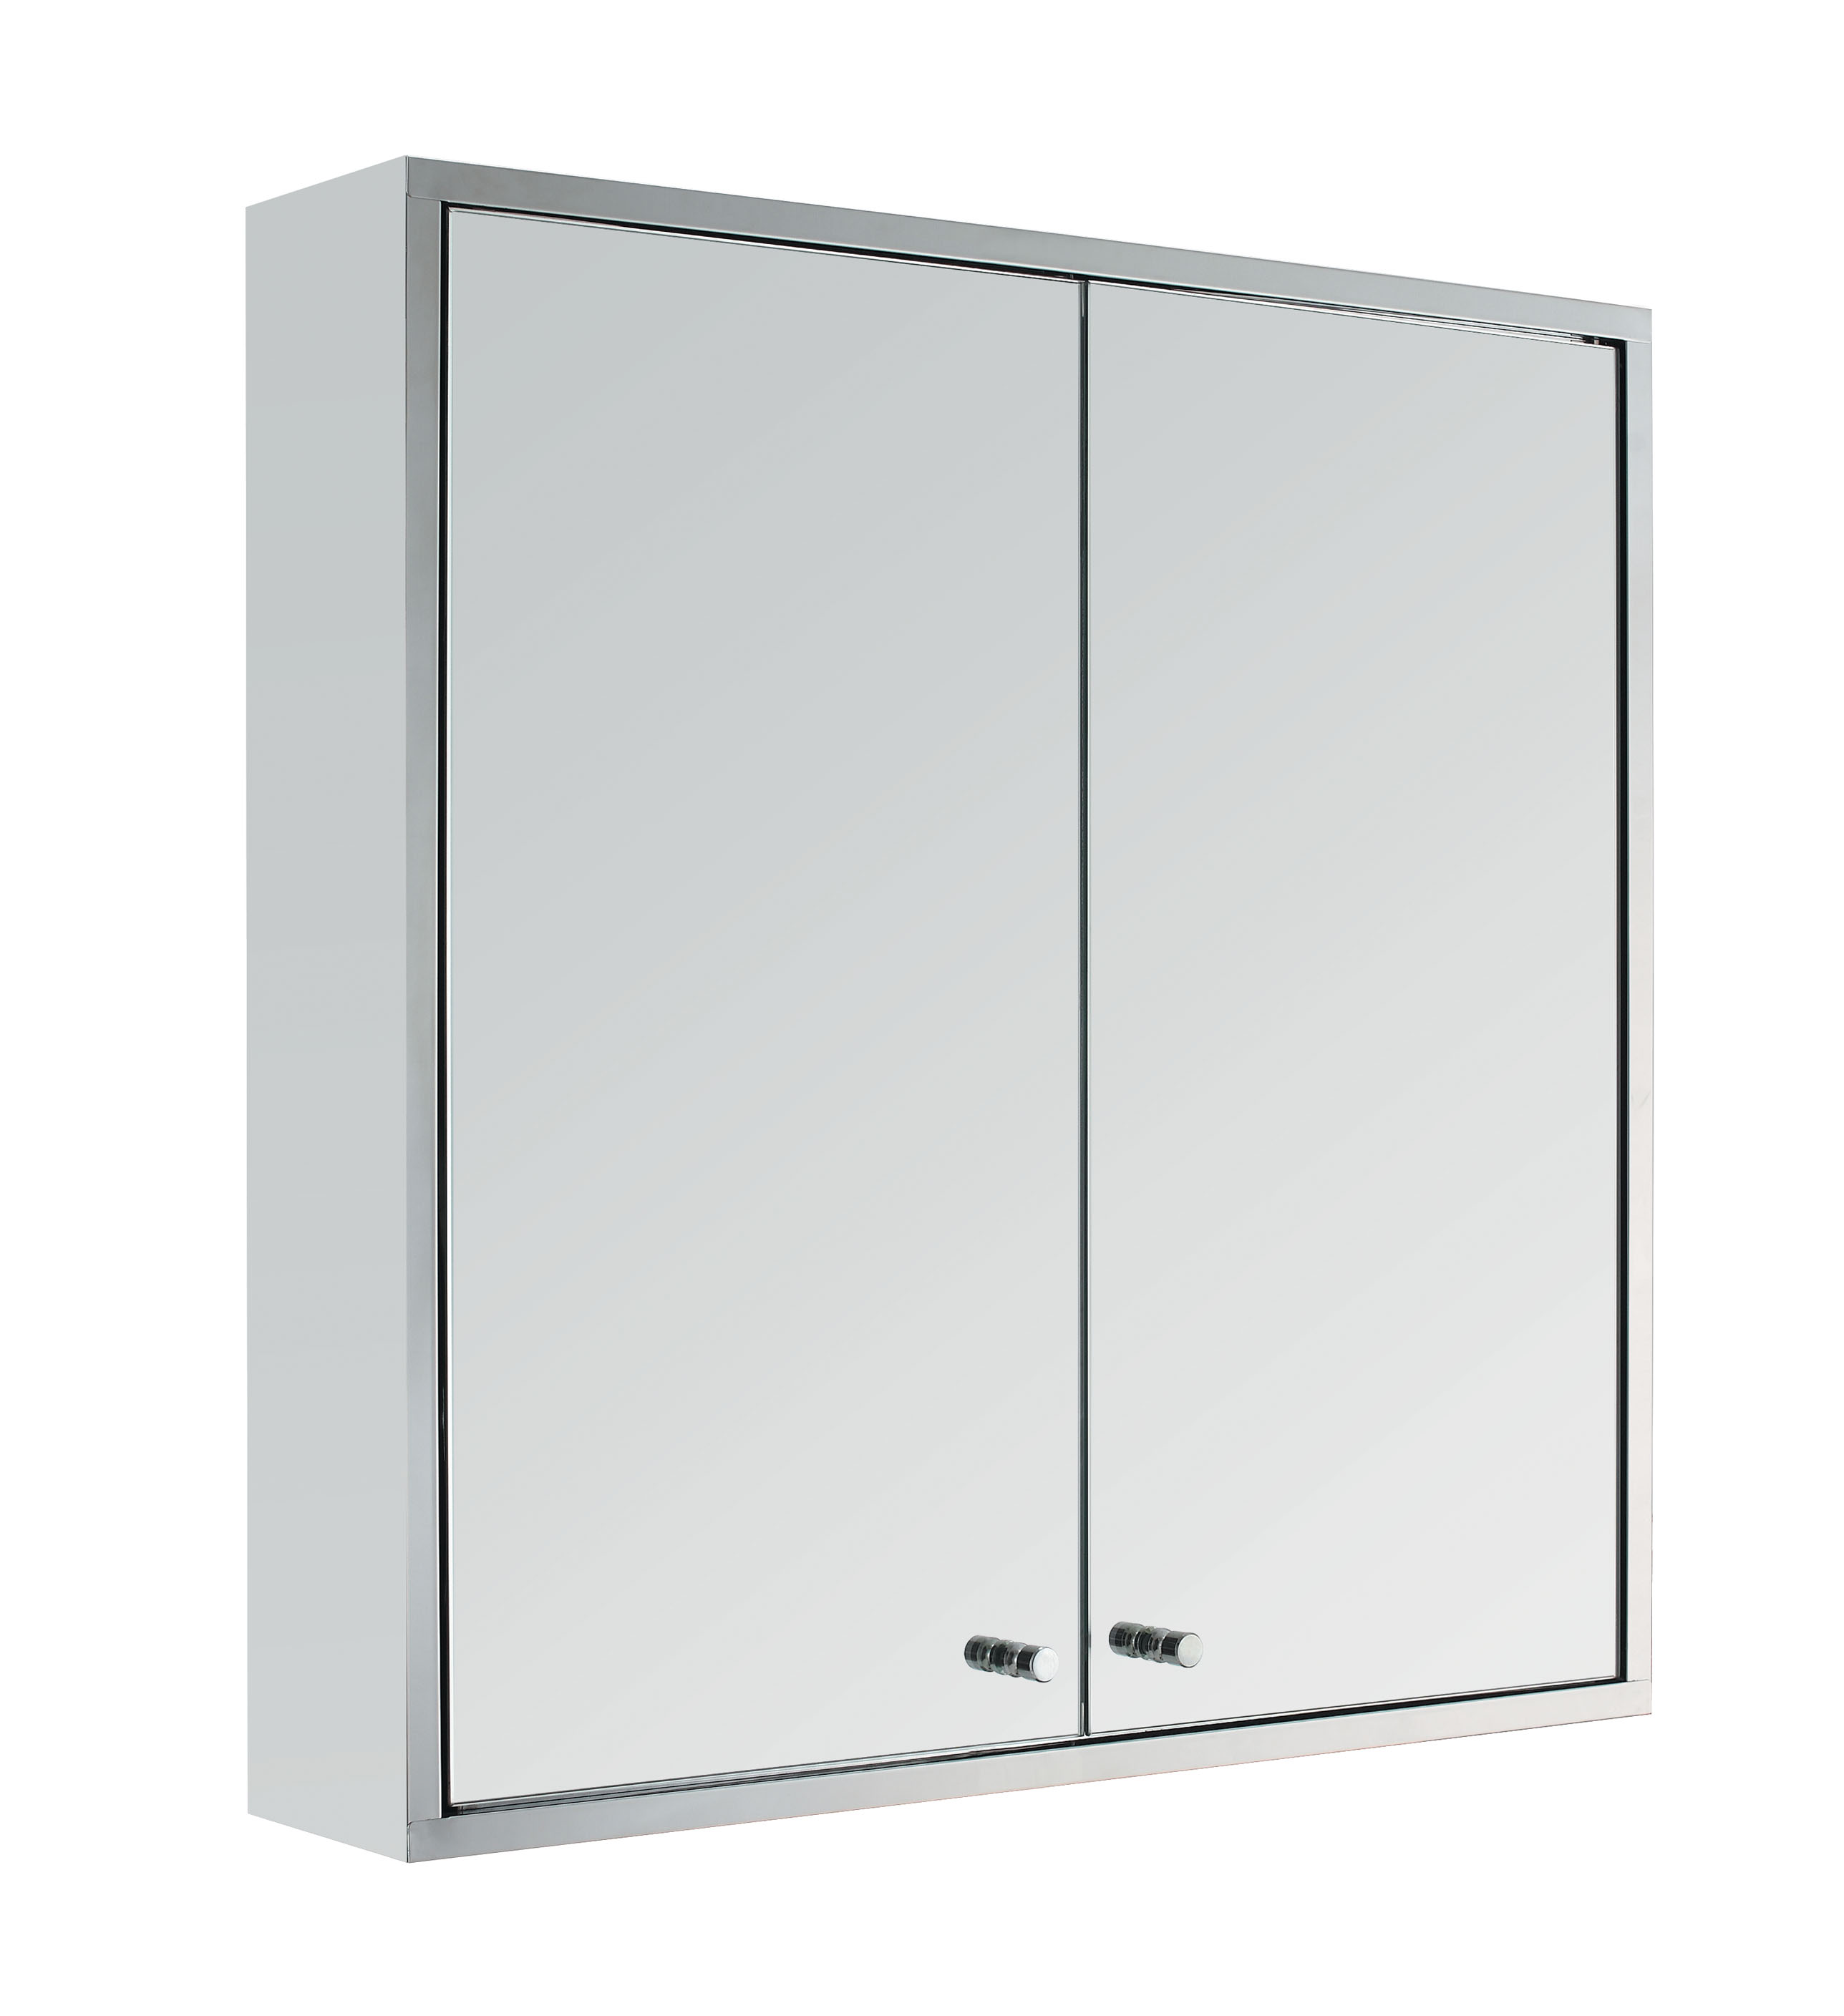 Stainless Steel Double Door Wall Mount Bathroom Cabinet Storage ...